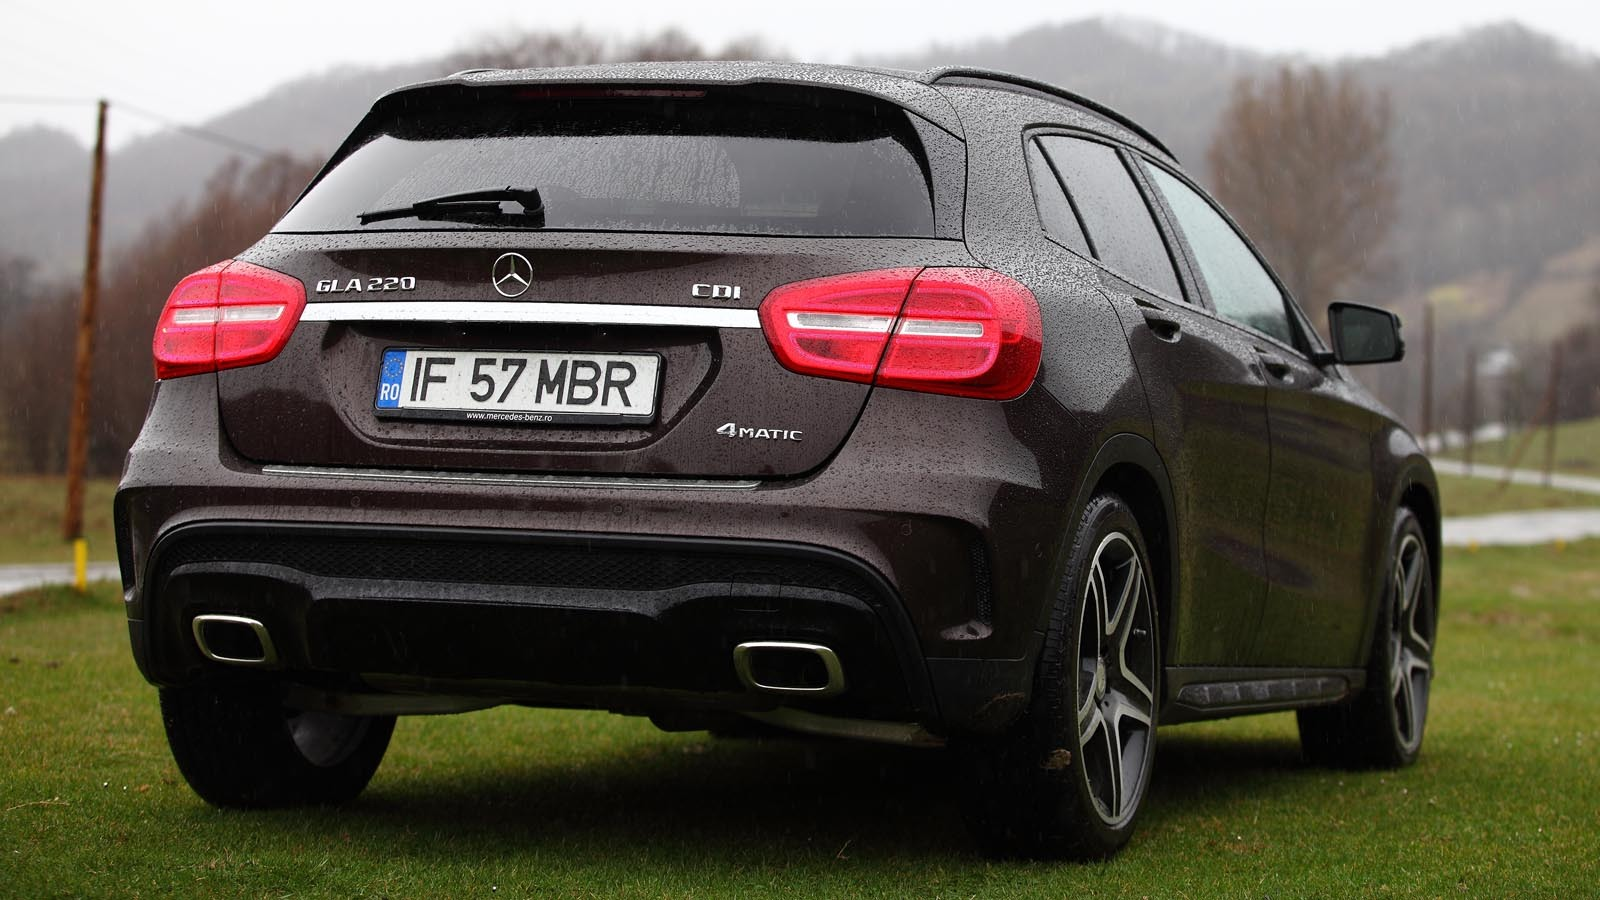 mercedes benz gla 220 cdi 4matic test. Black Bedroom Furniture Sets. Home Design Ideas